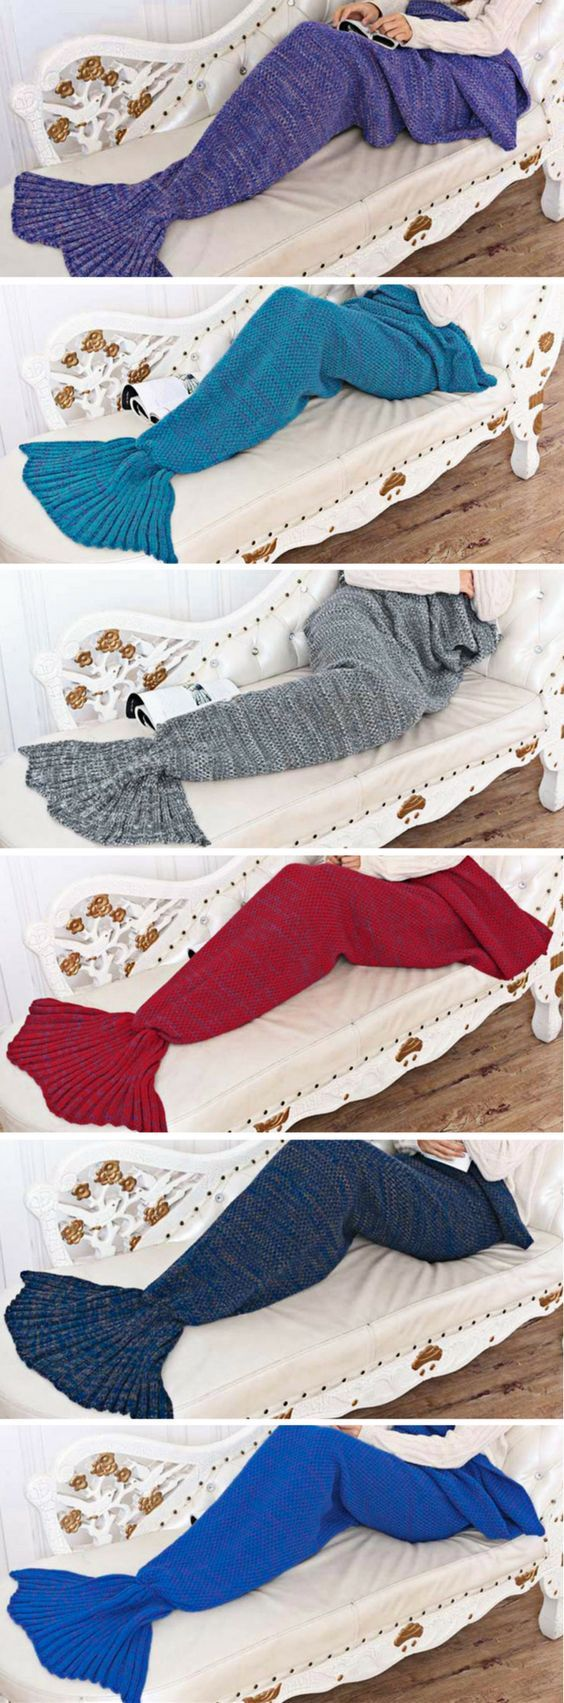 Type: Mermaid Tail Blanket Age Group: Adults, Teens, Kids Material: Wool, Acrylic Colors: Red, Dark Blue, Navy Blue, Light Blue, Gold, Gray, Purple Sizes: One